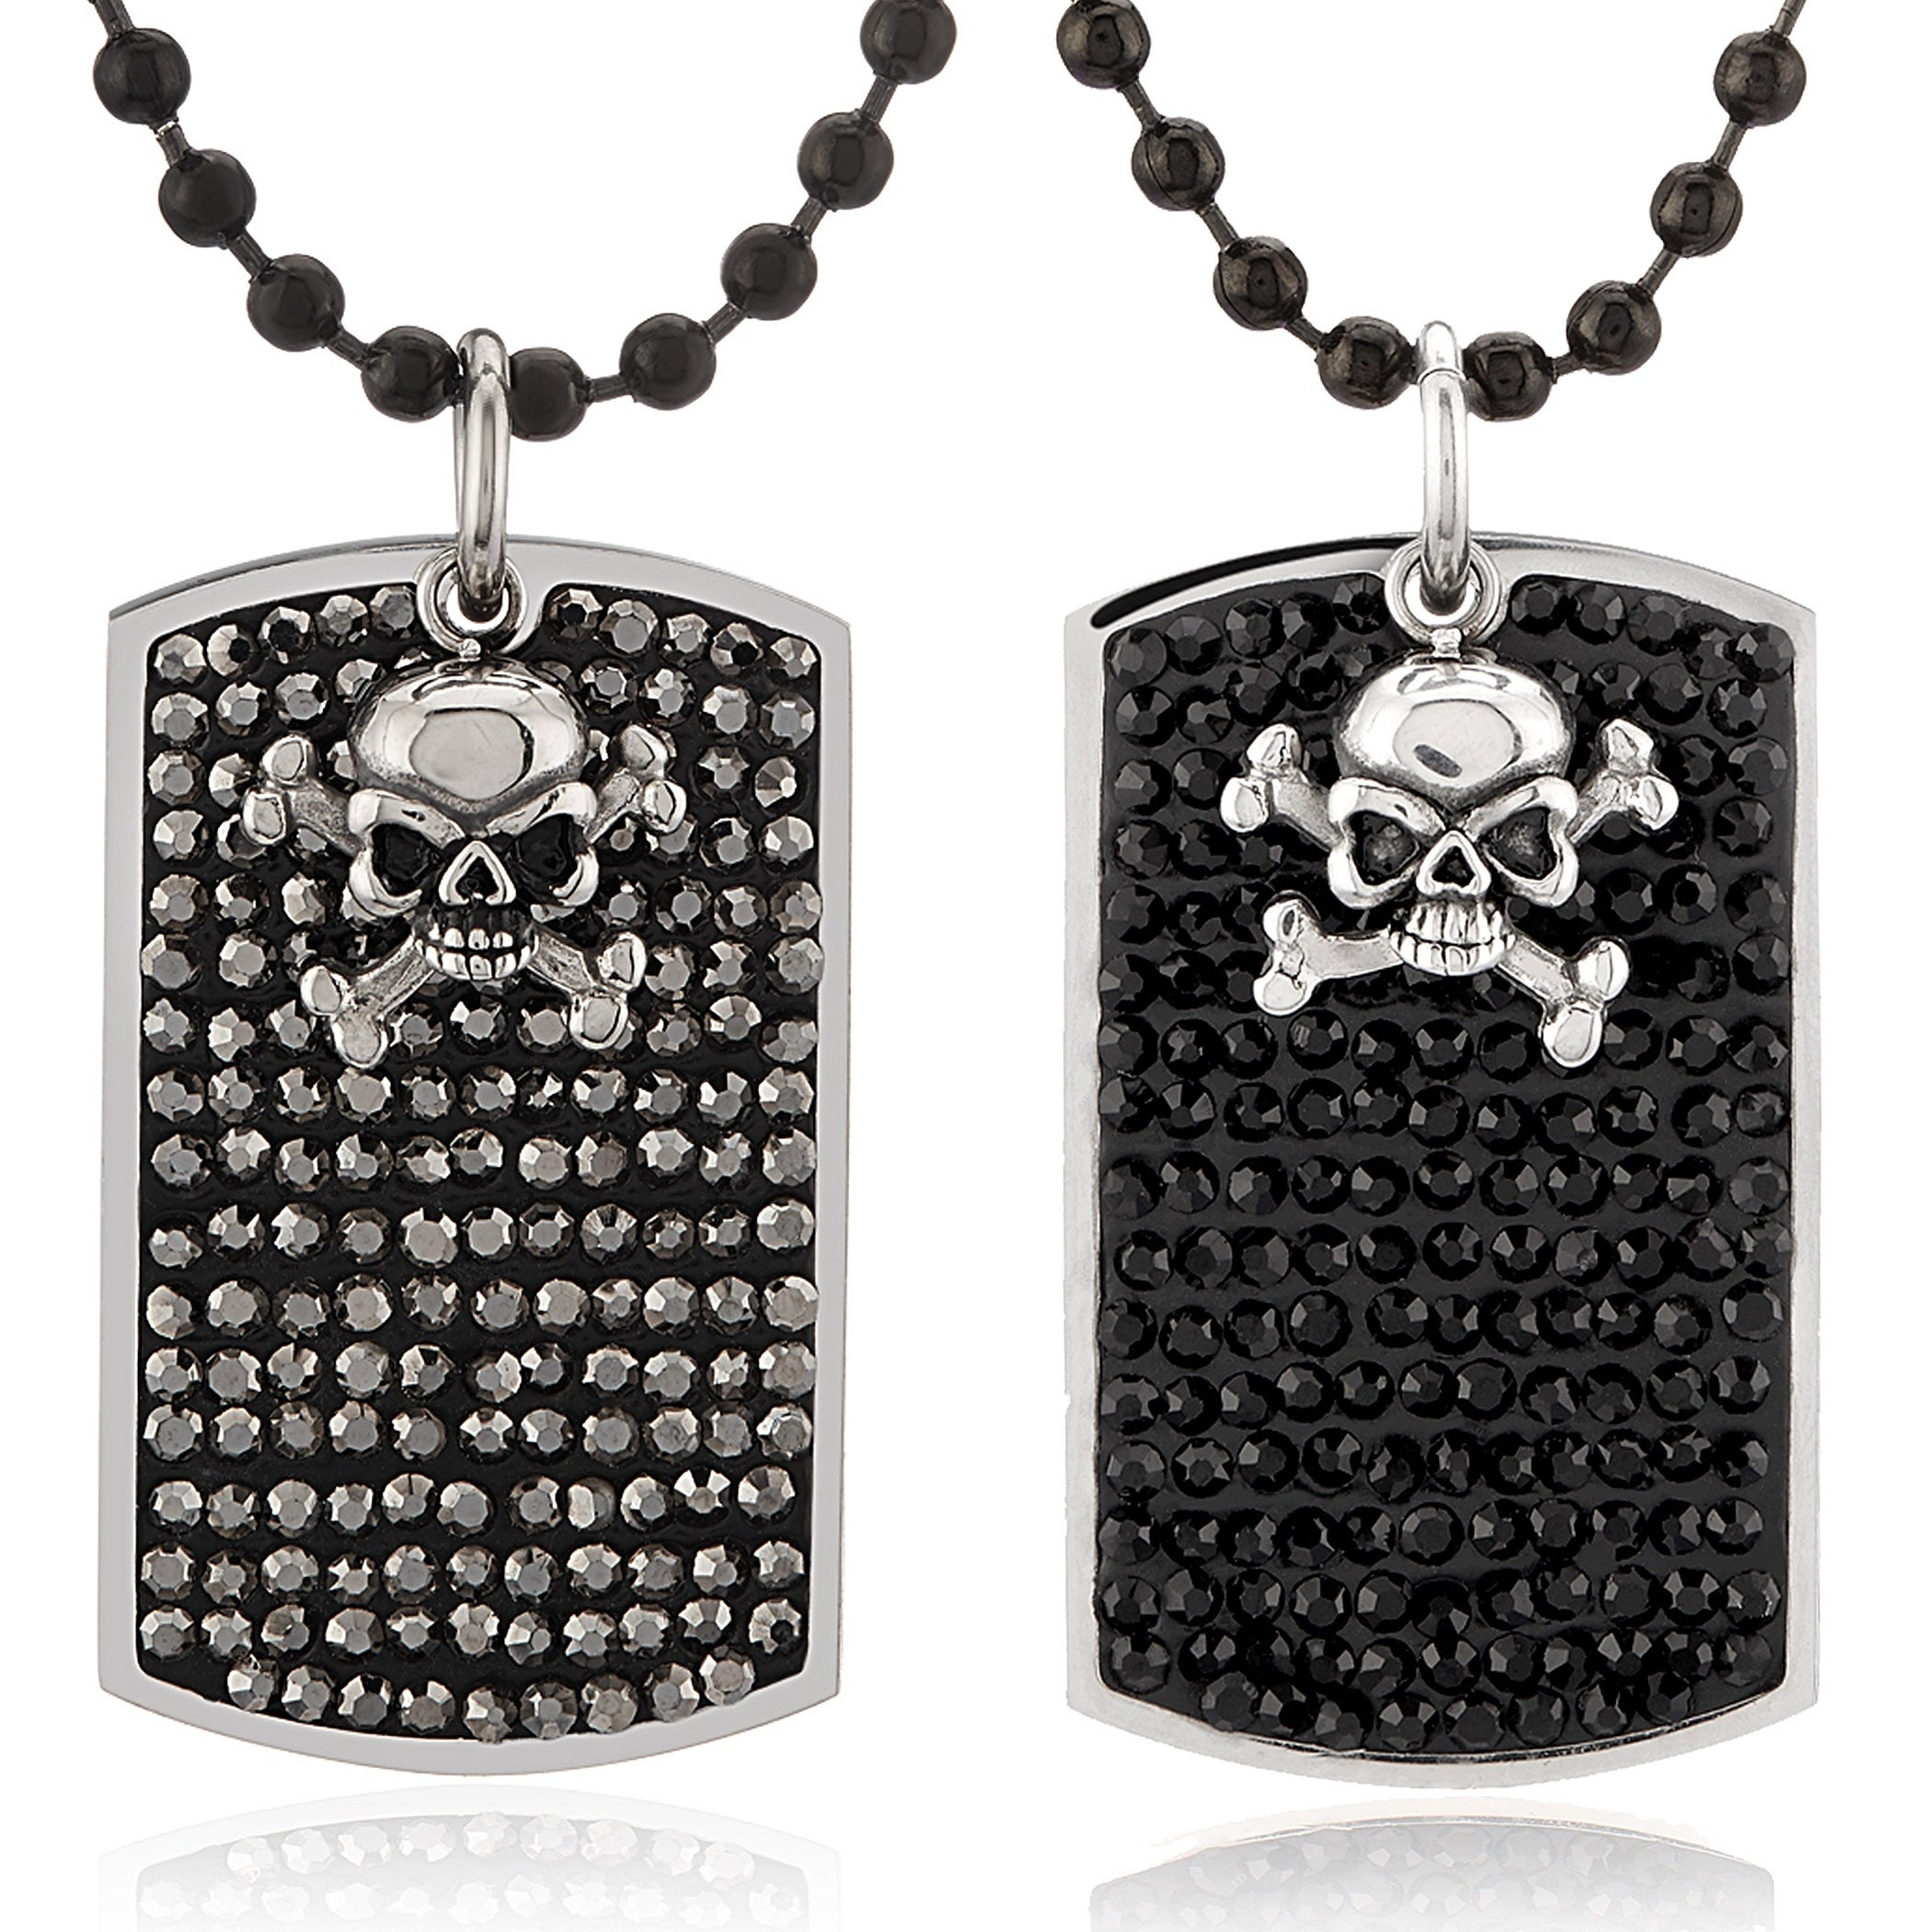 in hip box necklaces tag jewelry pendant men chain from necklace alloy punk skull antique fashion hop dog new item with